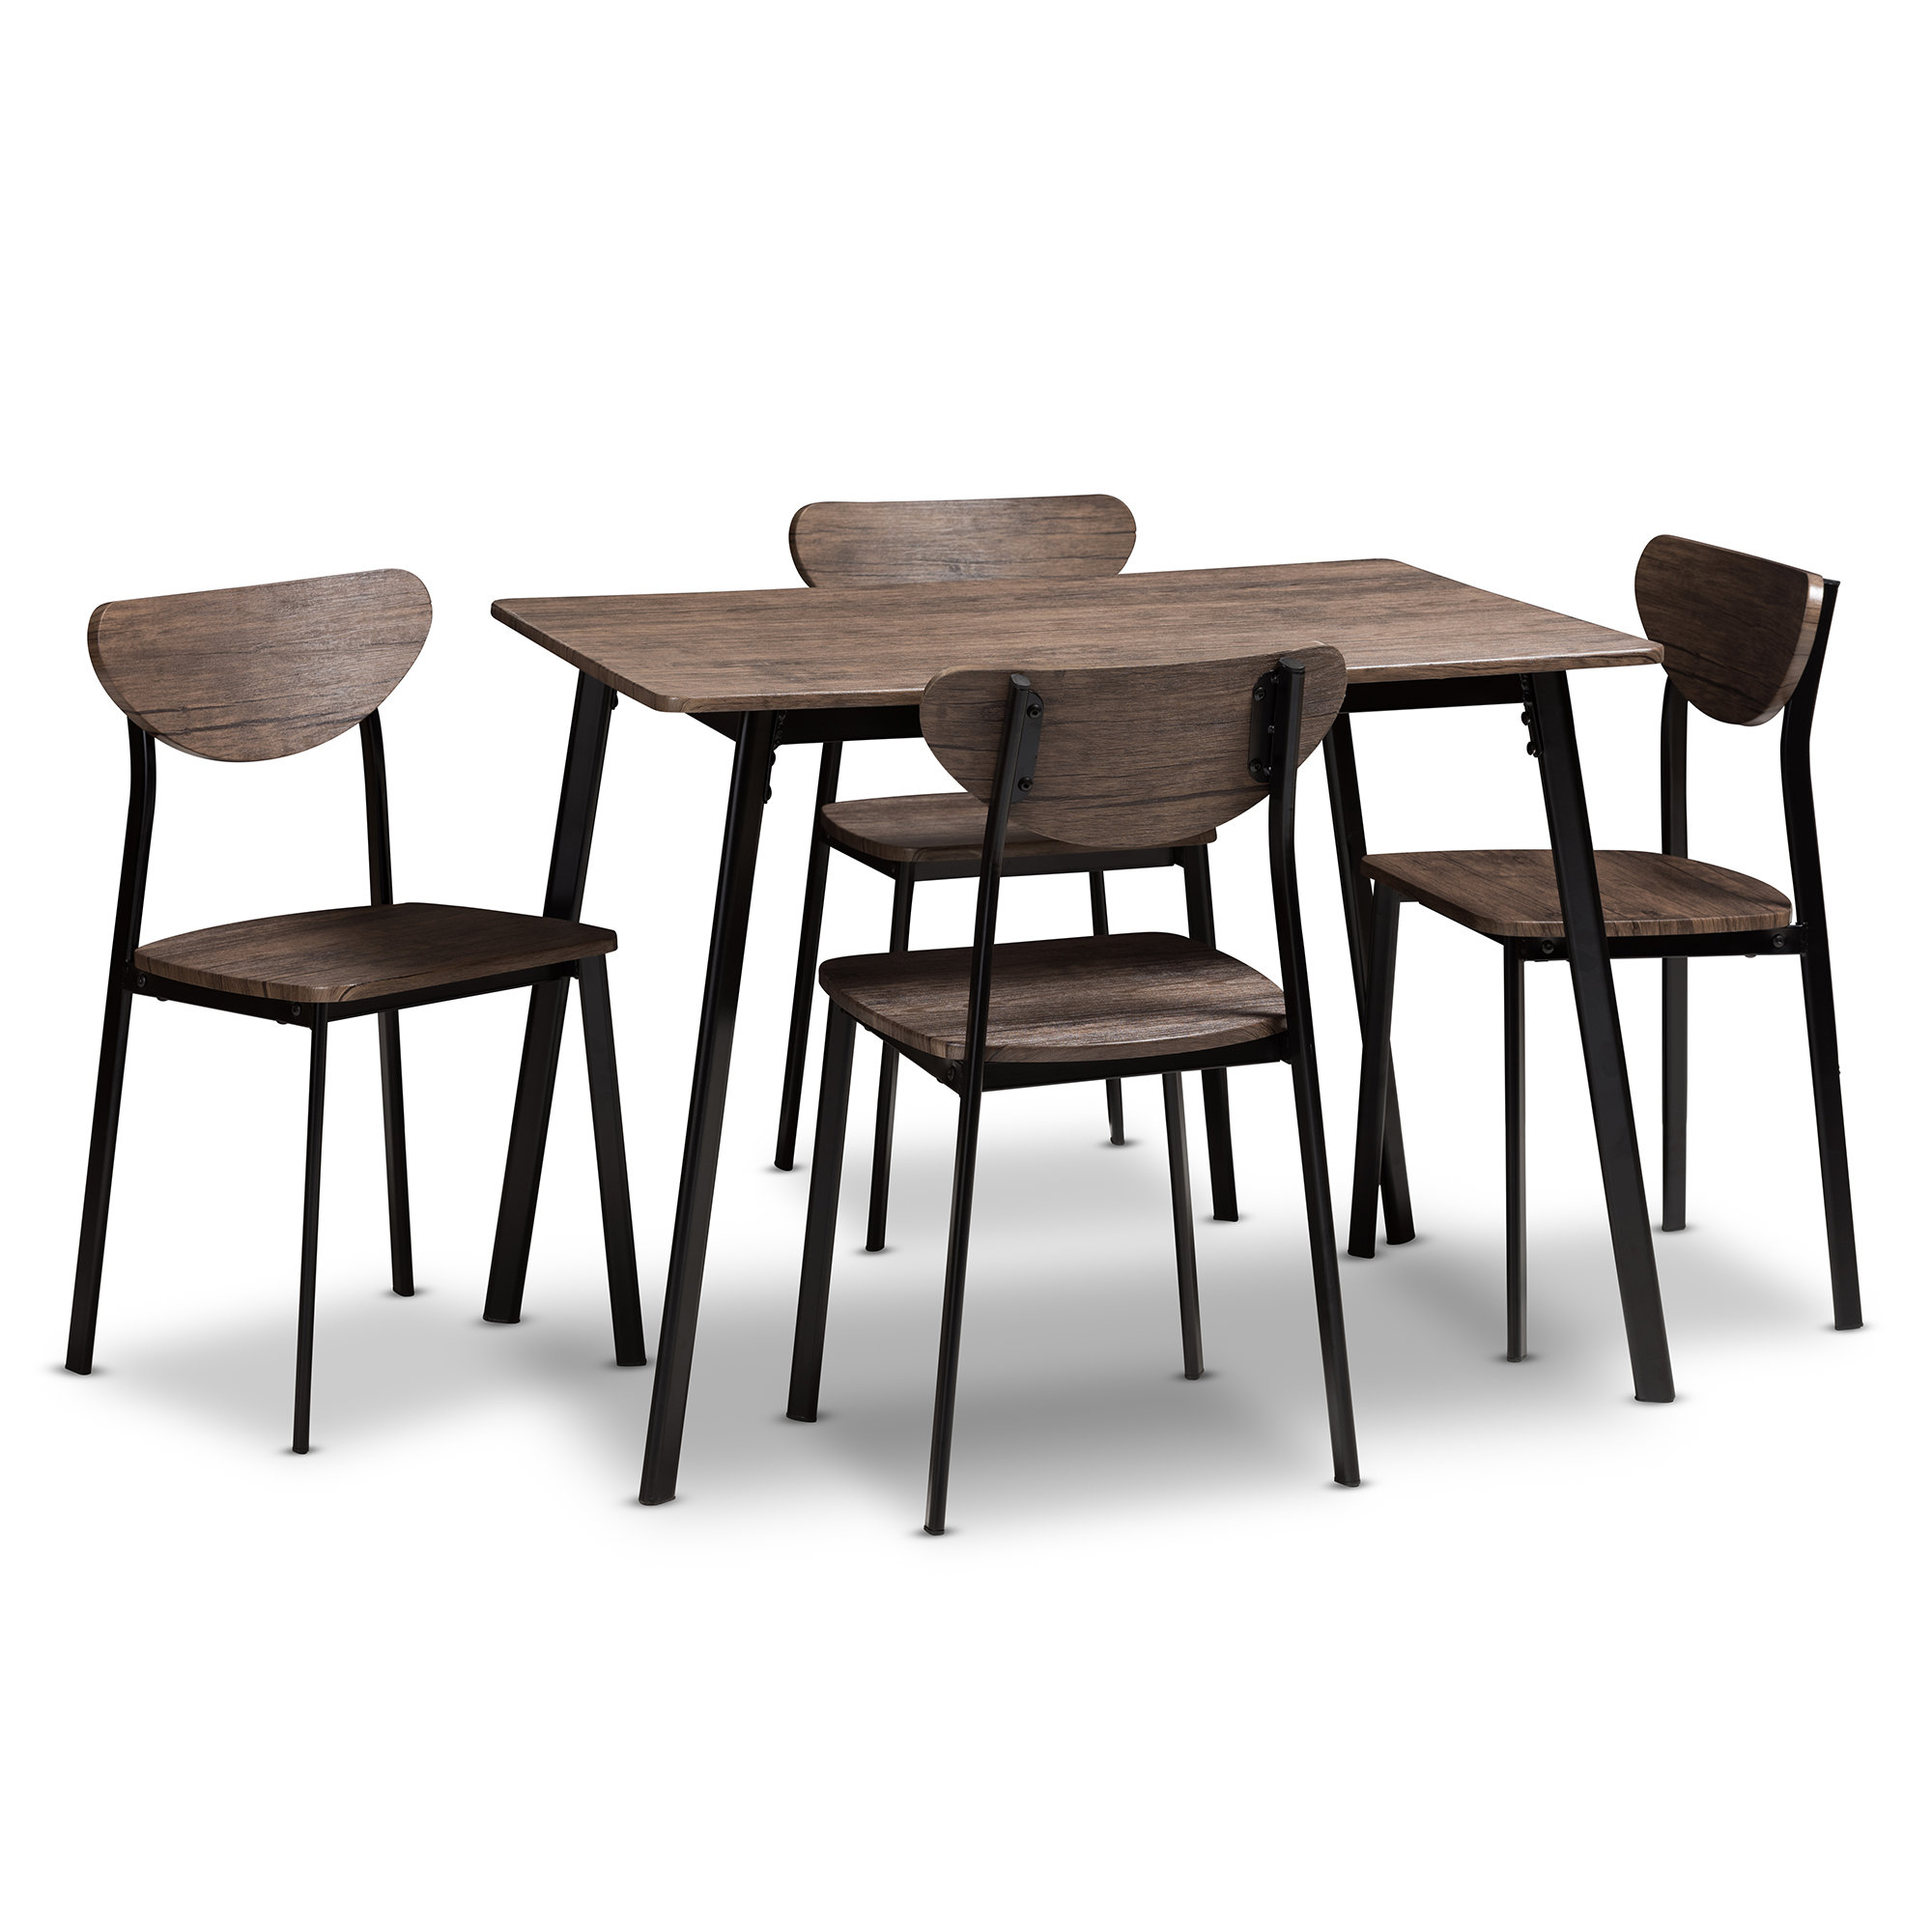 Tejeda 5 Piece Dining Set Throughout Most Popular Middleport 5 Piece Dining Sets (View 17 of 20)